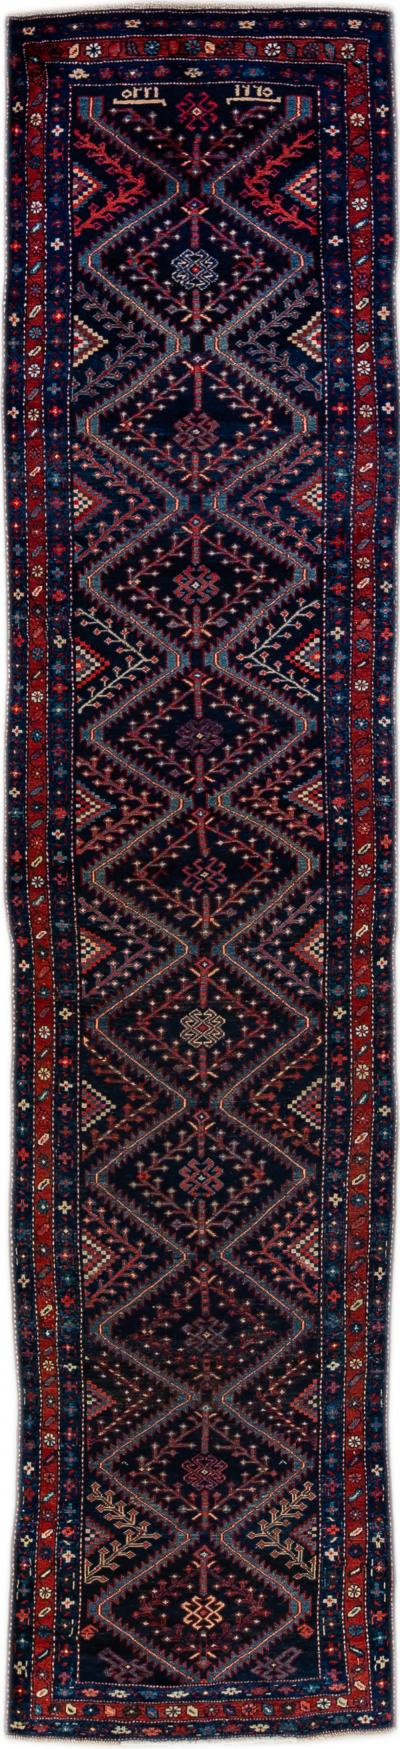 Antique Pesian Malayer Handmade Tribal Blue And Red Wool Runner Rug